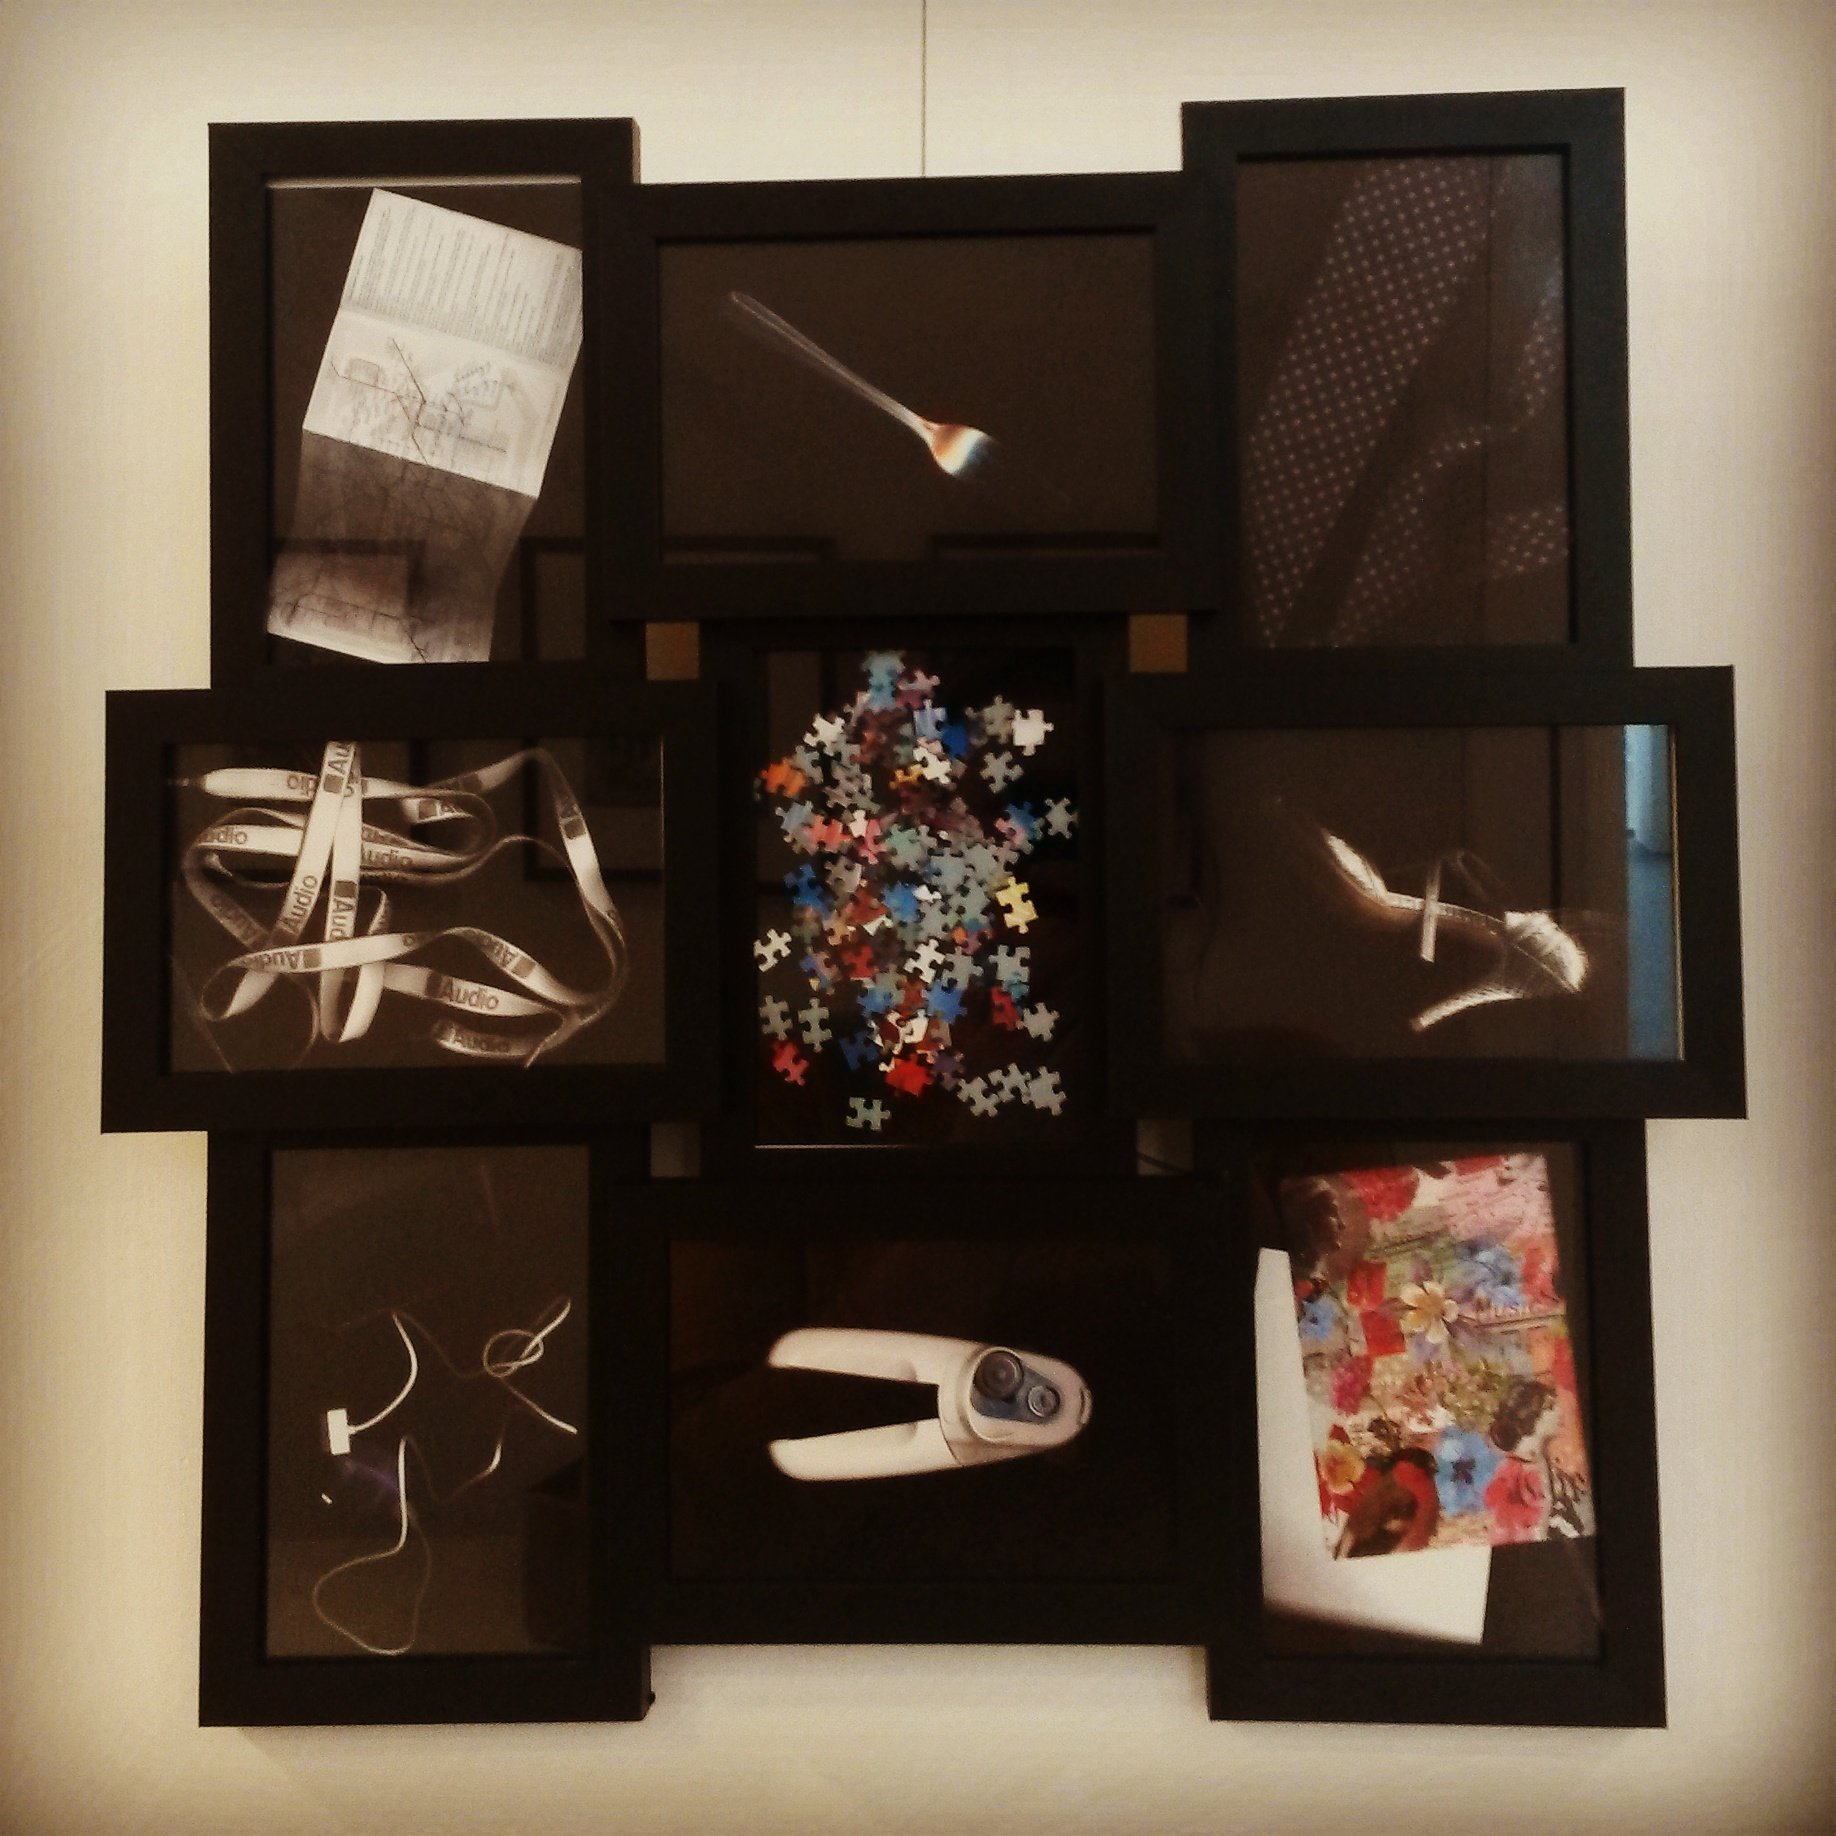 image of 9 photos of scanned objects framed in one frame